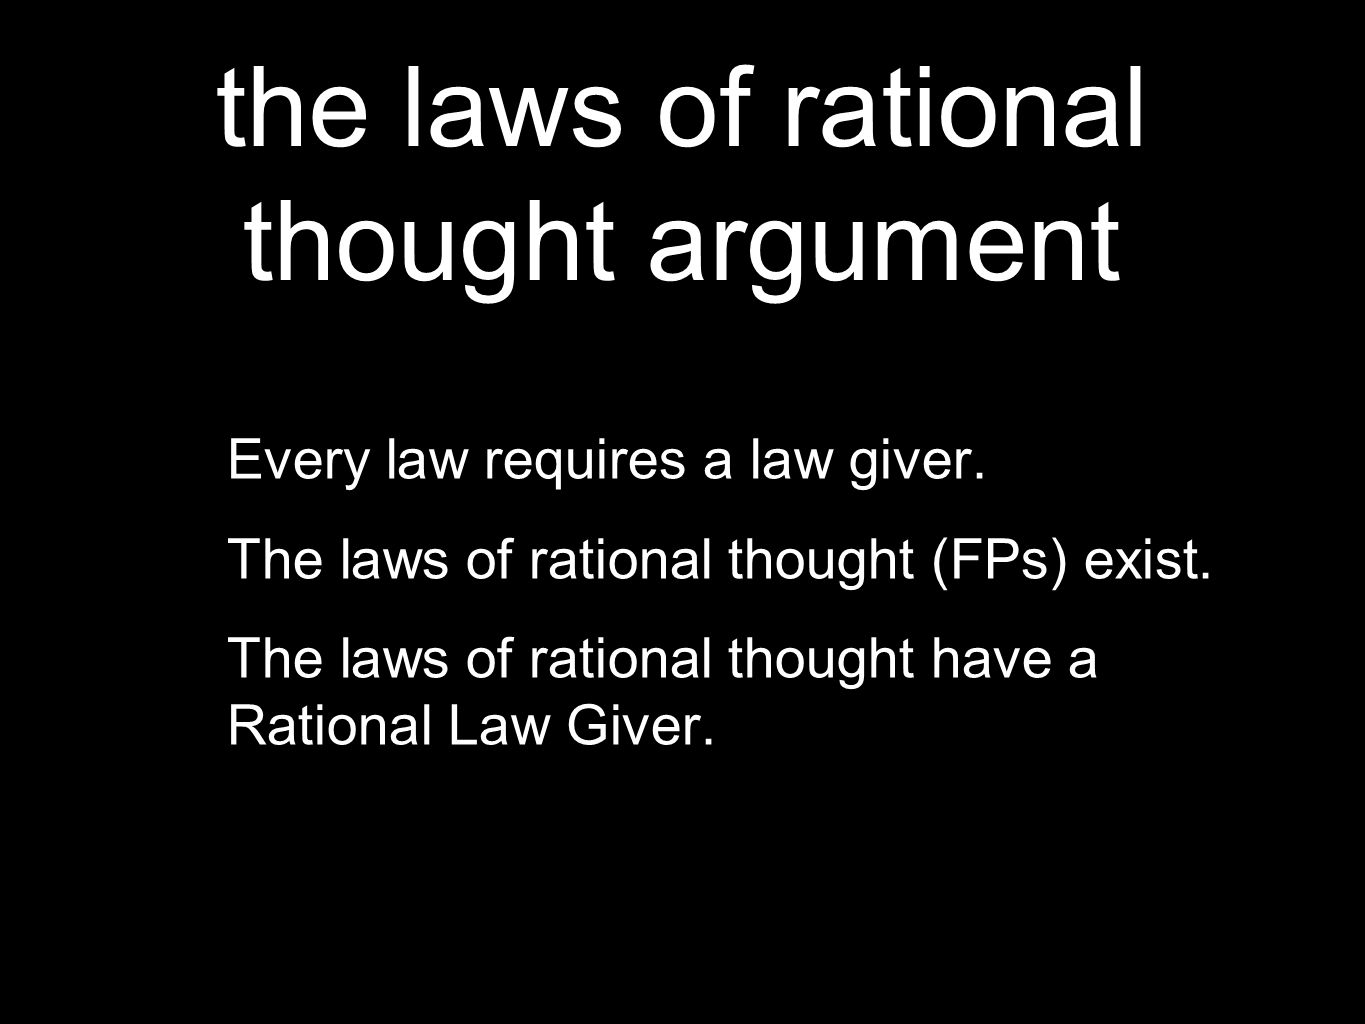 the laws of rational thought argument Every law requires a law giver.